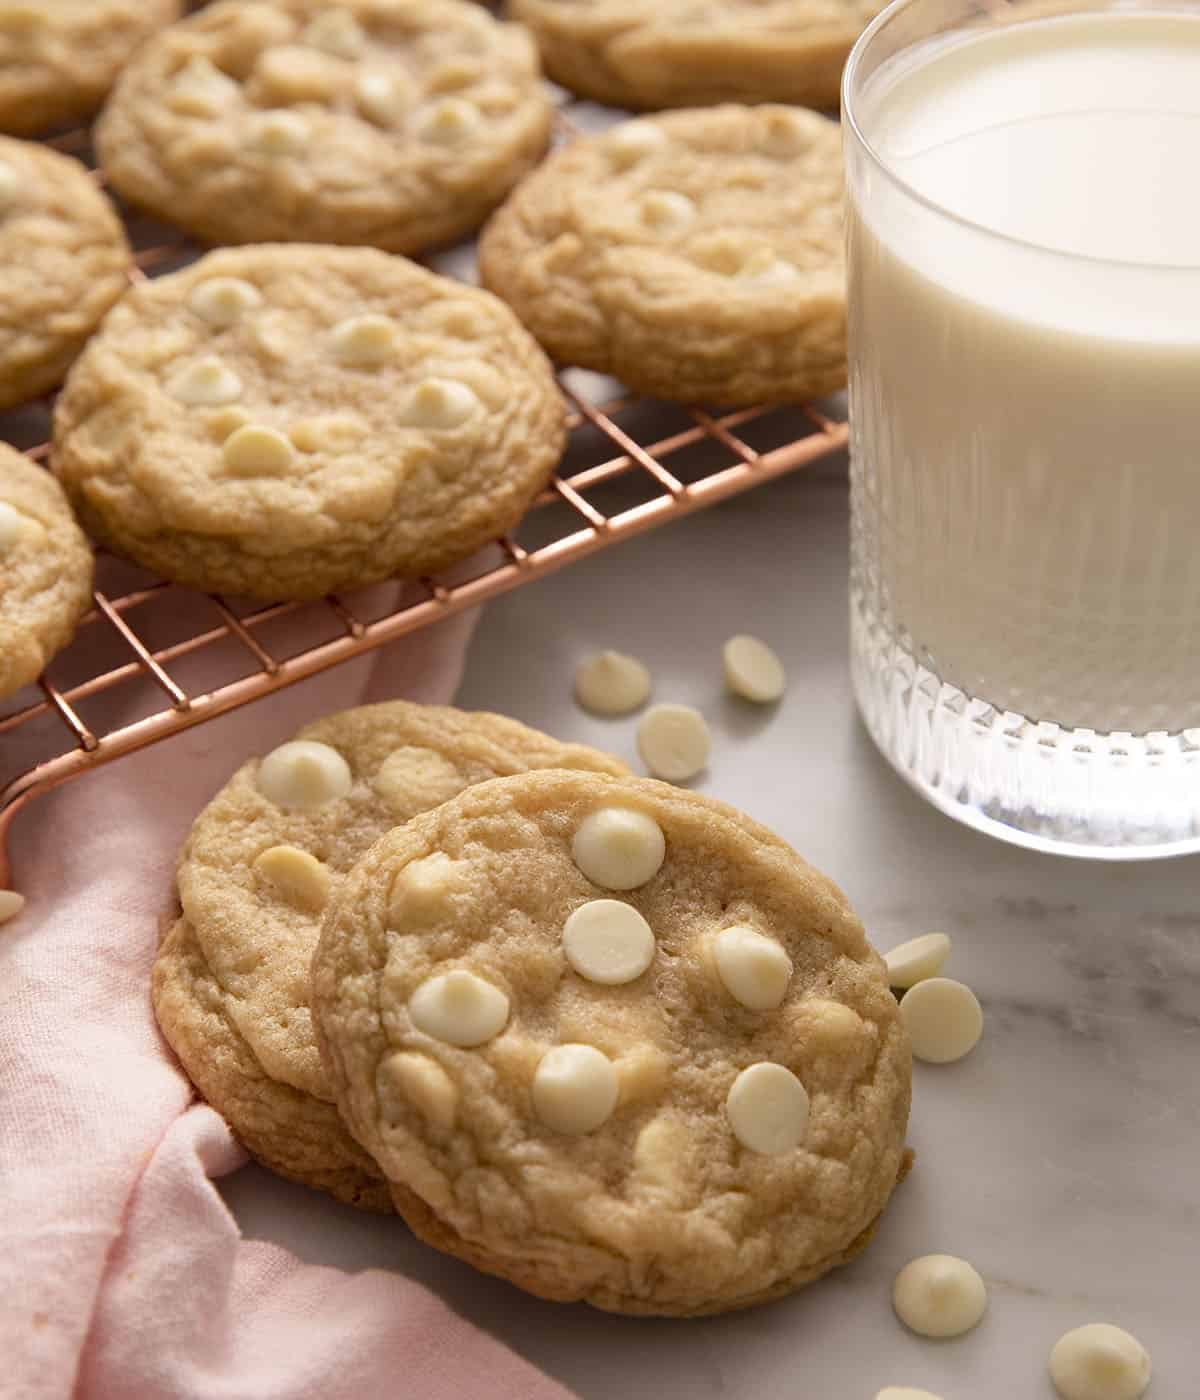 A close up of two cookies beside a glass of milk